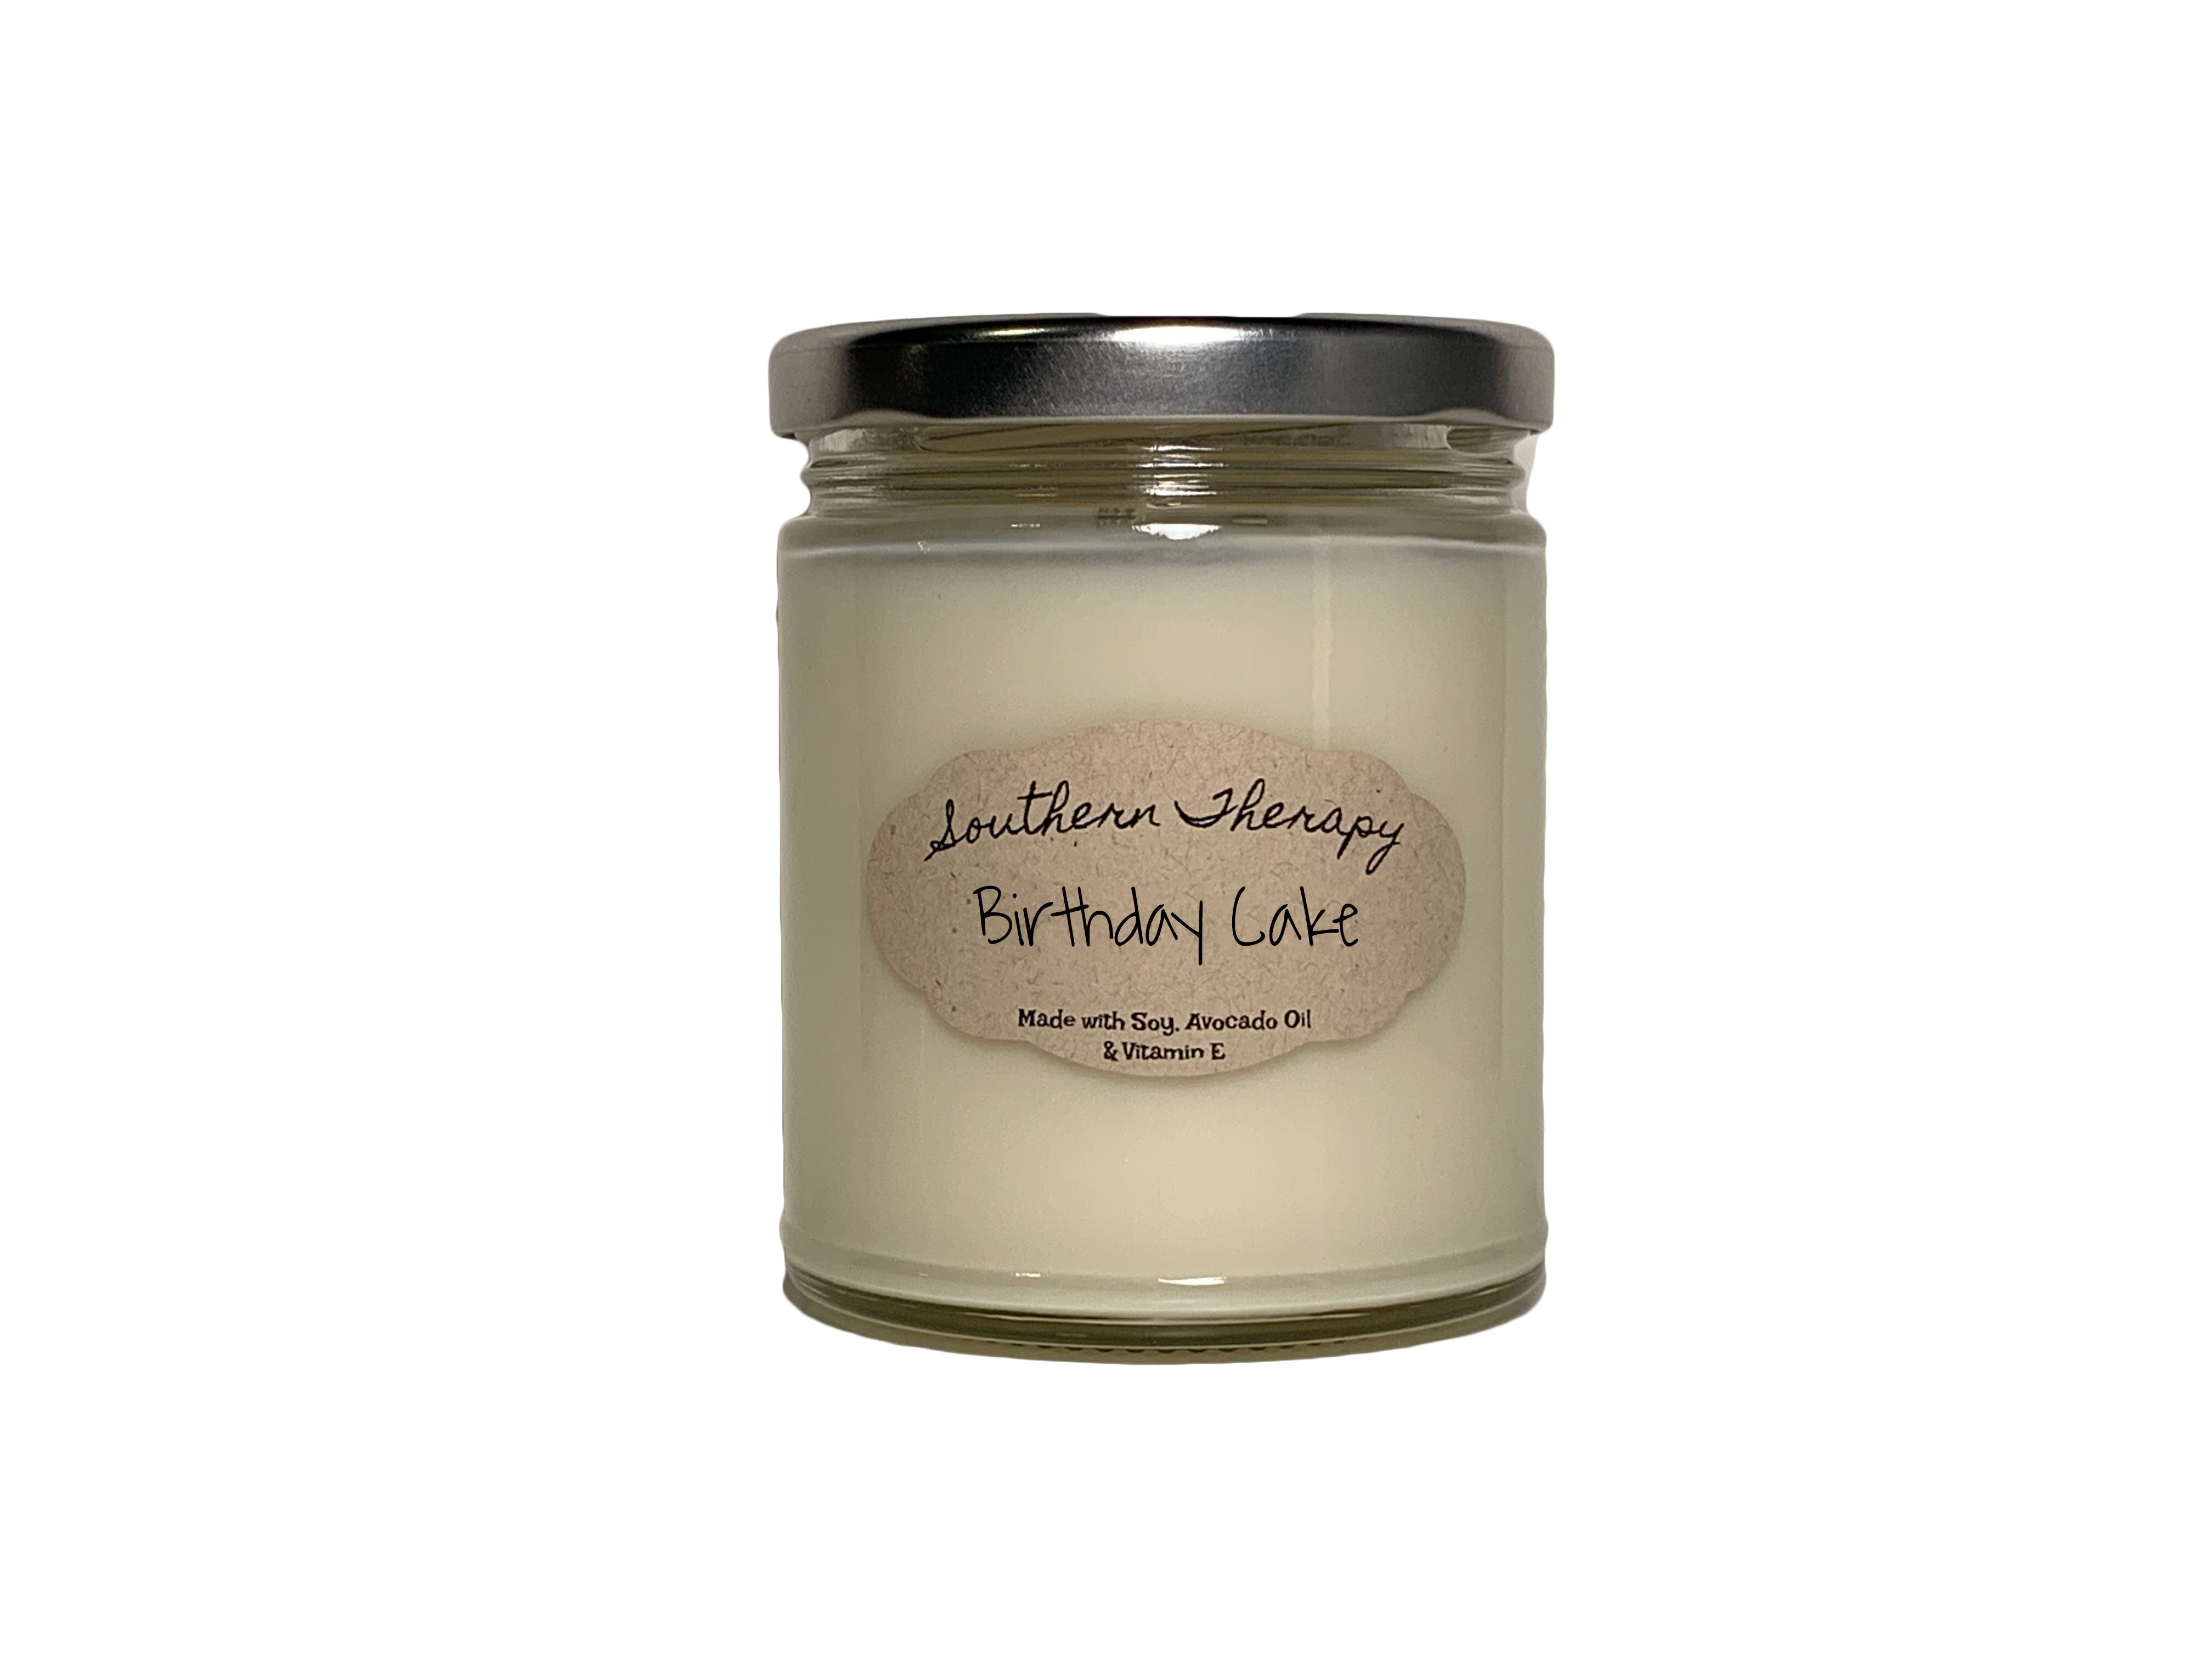 Amazing Southern Therapy Candles Birthday Cake Scented Jar Candle Wayfair Funny Birthday Cards Online Unhofree Goldxyz